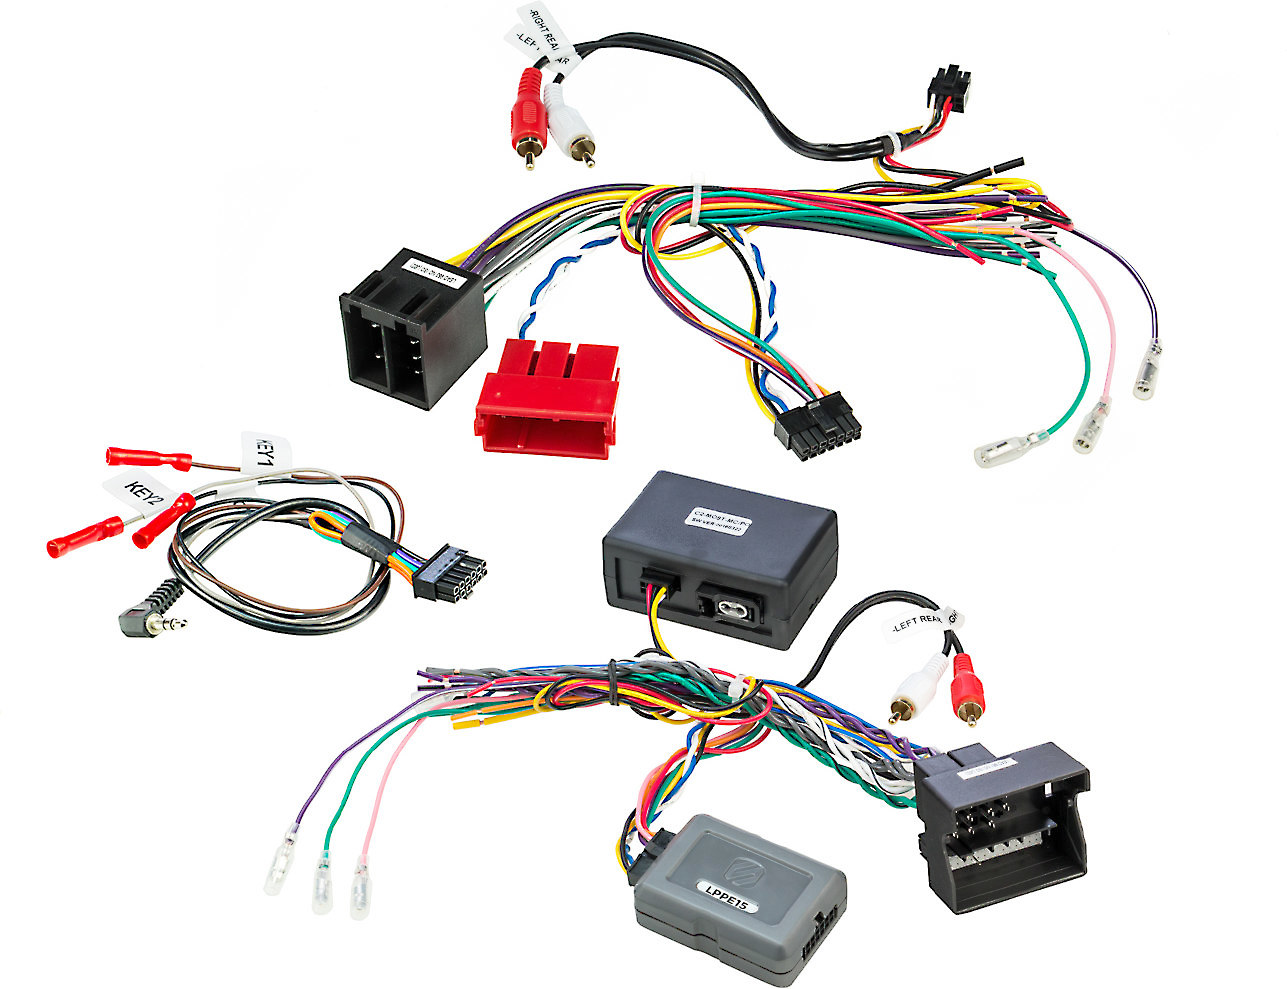 hight resolution of scosche lppe15 wiring interface connect a new car stereo to 2003 10 porsche cayenne vehicles with fiber optic amp at crutchfield